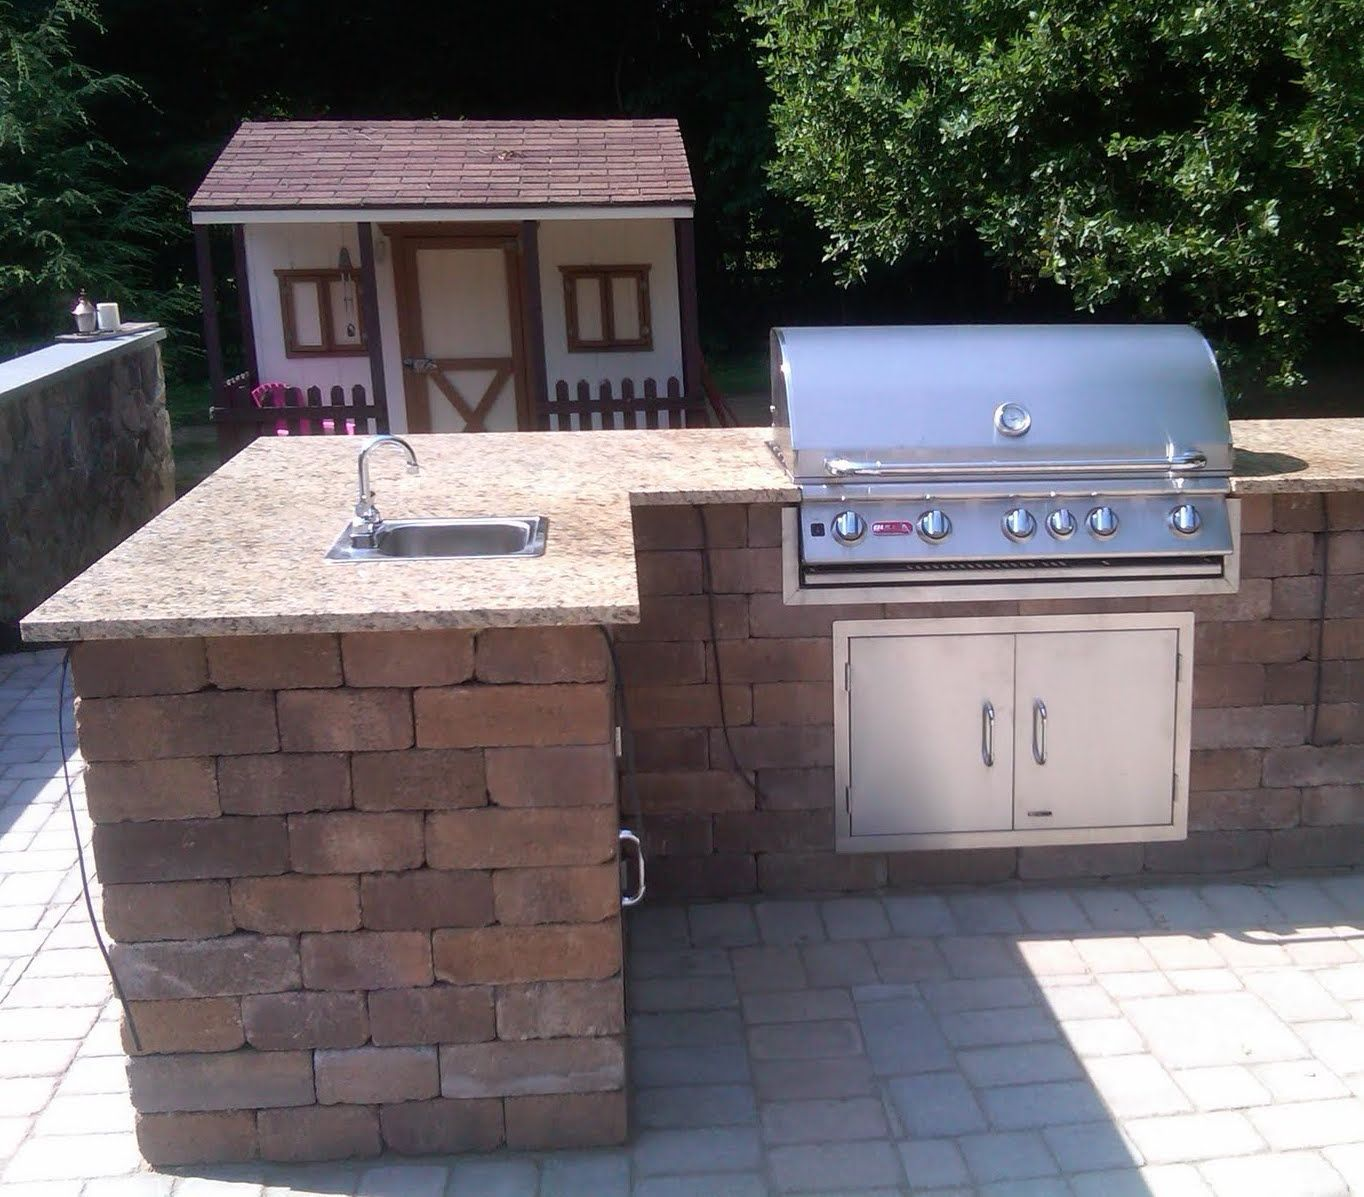 Cambridge Outdoor Kitchens Feature Beautiful Stainless Steel Grills Cabinets And Outdoor Kitchen Countertops Outdoor Kitchen Design